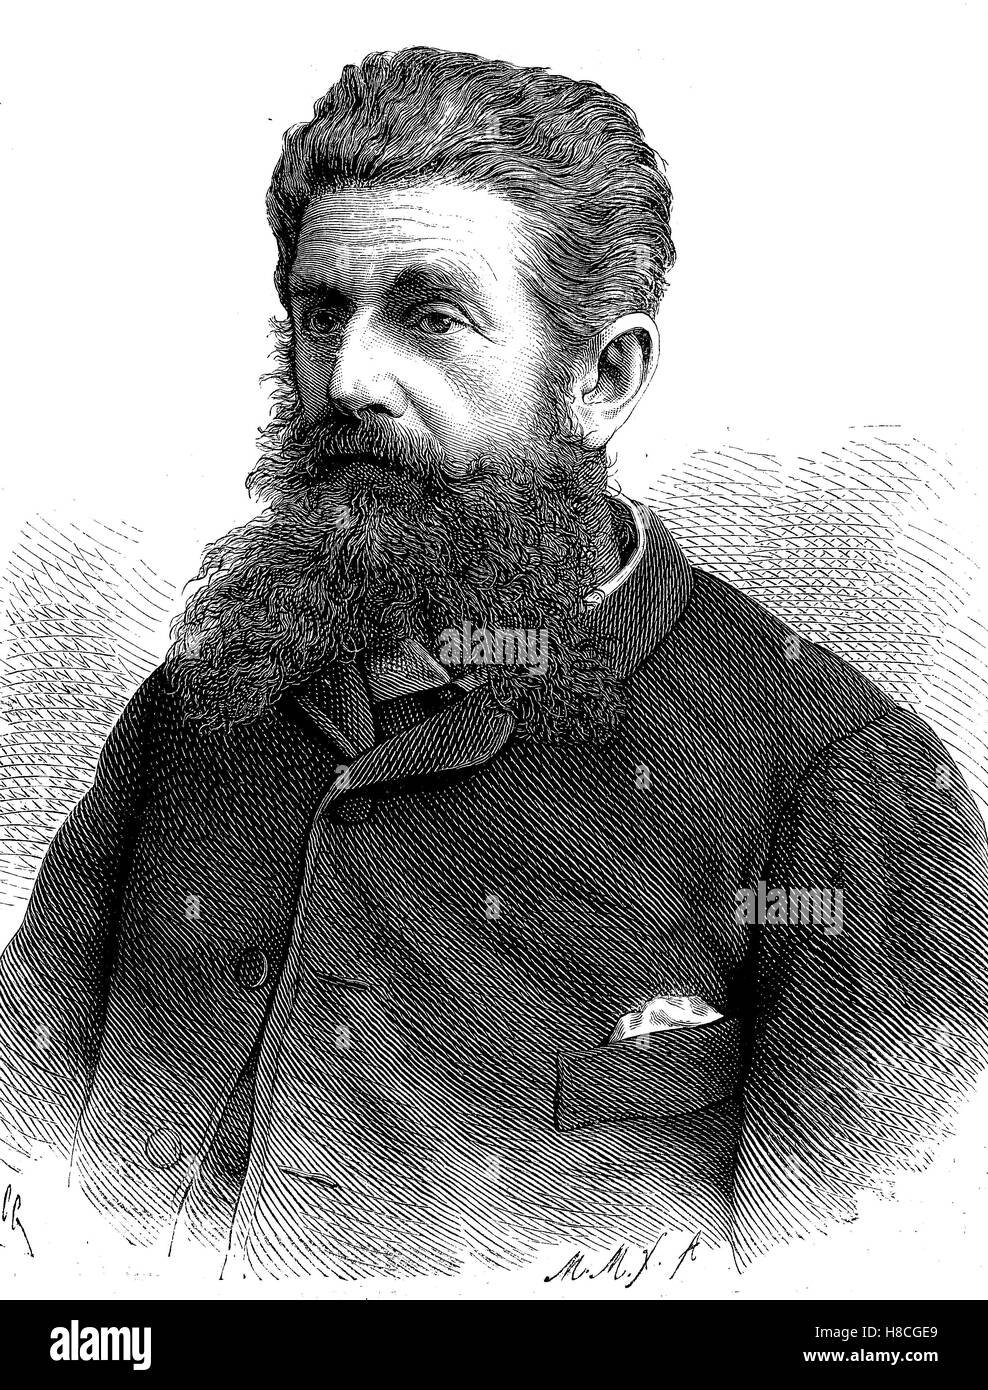 Wilhelm Junker, 6 April 1840 - 13 February 1892, was a Russian explorer of Africa. Dr. Junker was of German descent., - Stock Image